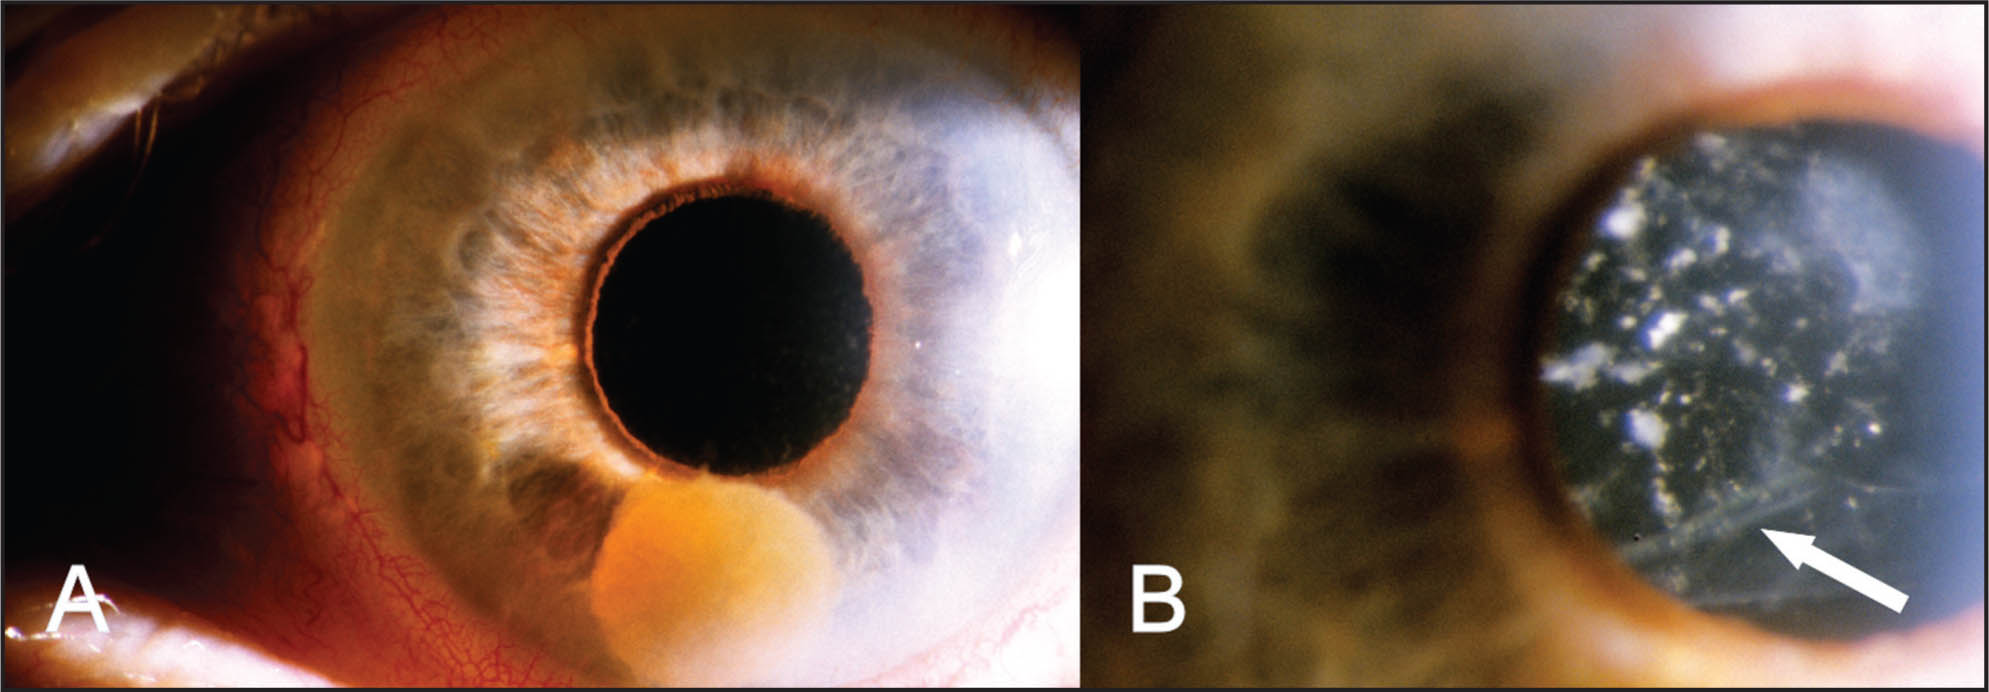 (A) Nucleus of Morgagnian Cataract Dislocated into the Anterior Chamber. (B) Tear in the Anterior Lens Capsule (arrow).